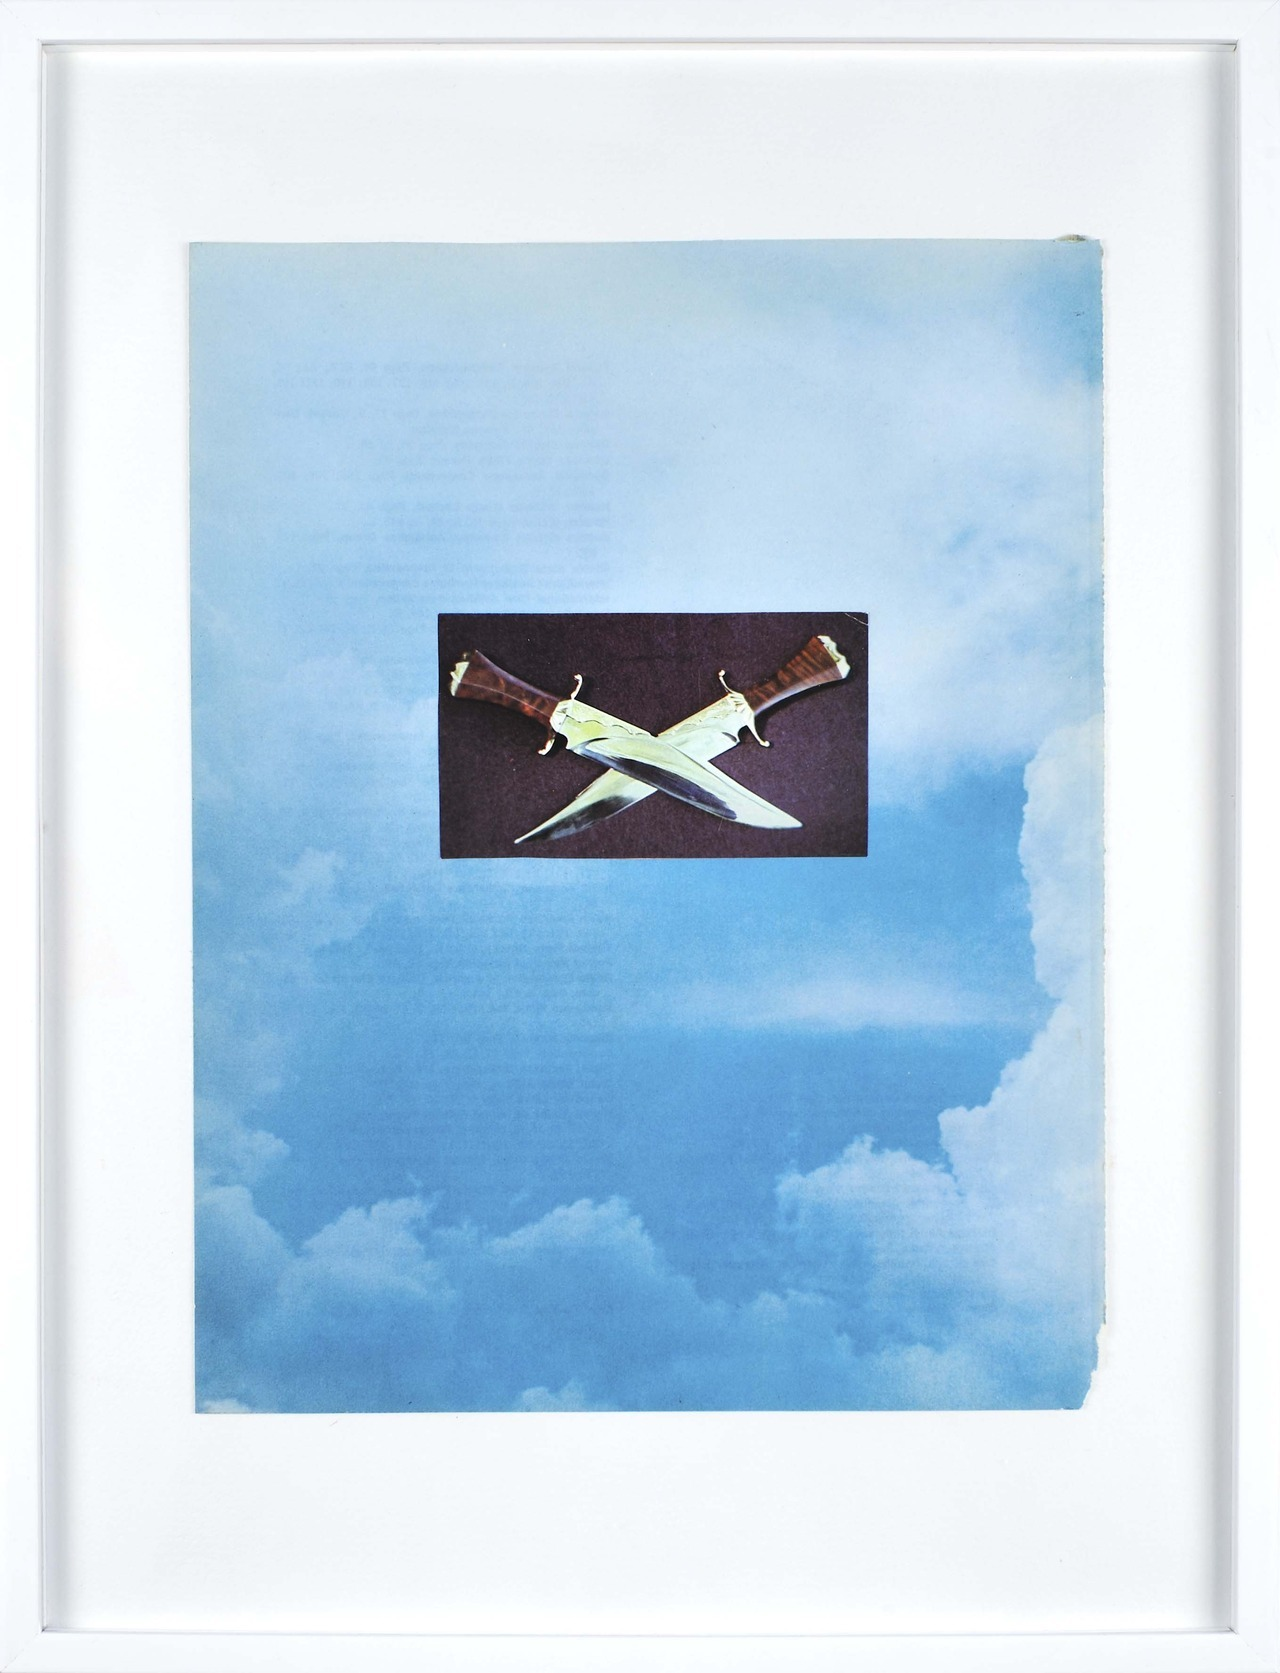 A Sedated Summer Apogee series (collage on paper), 2012